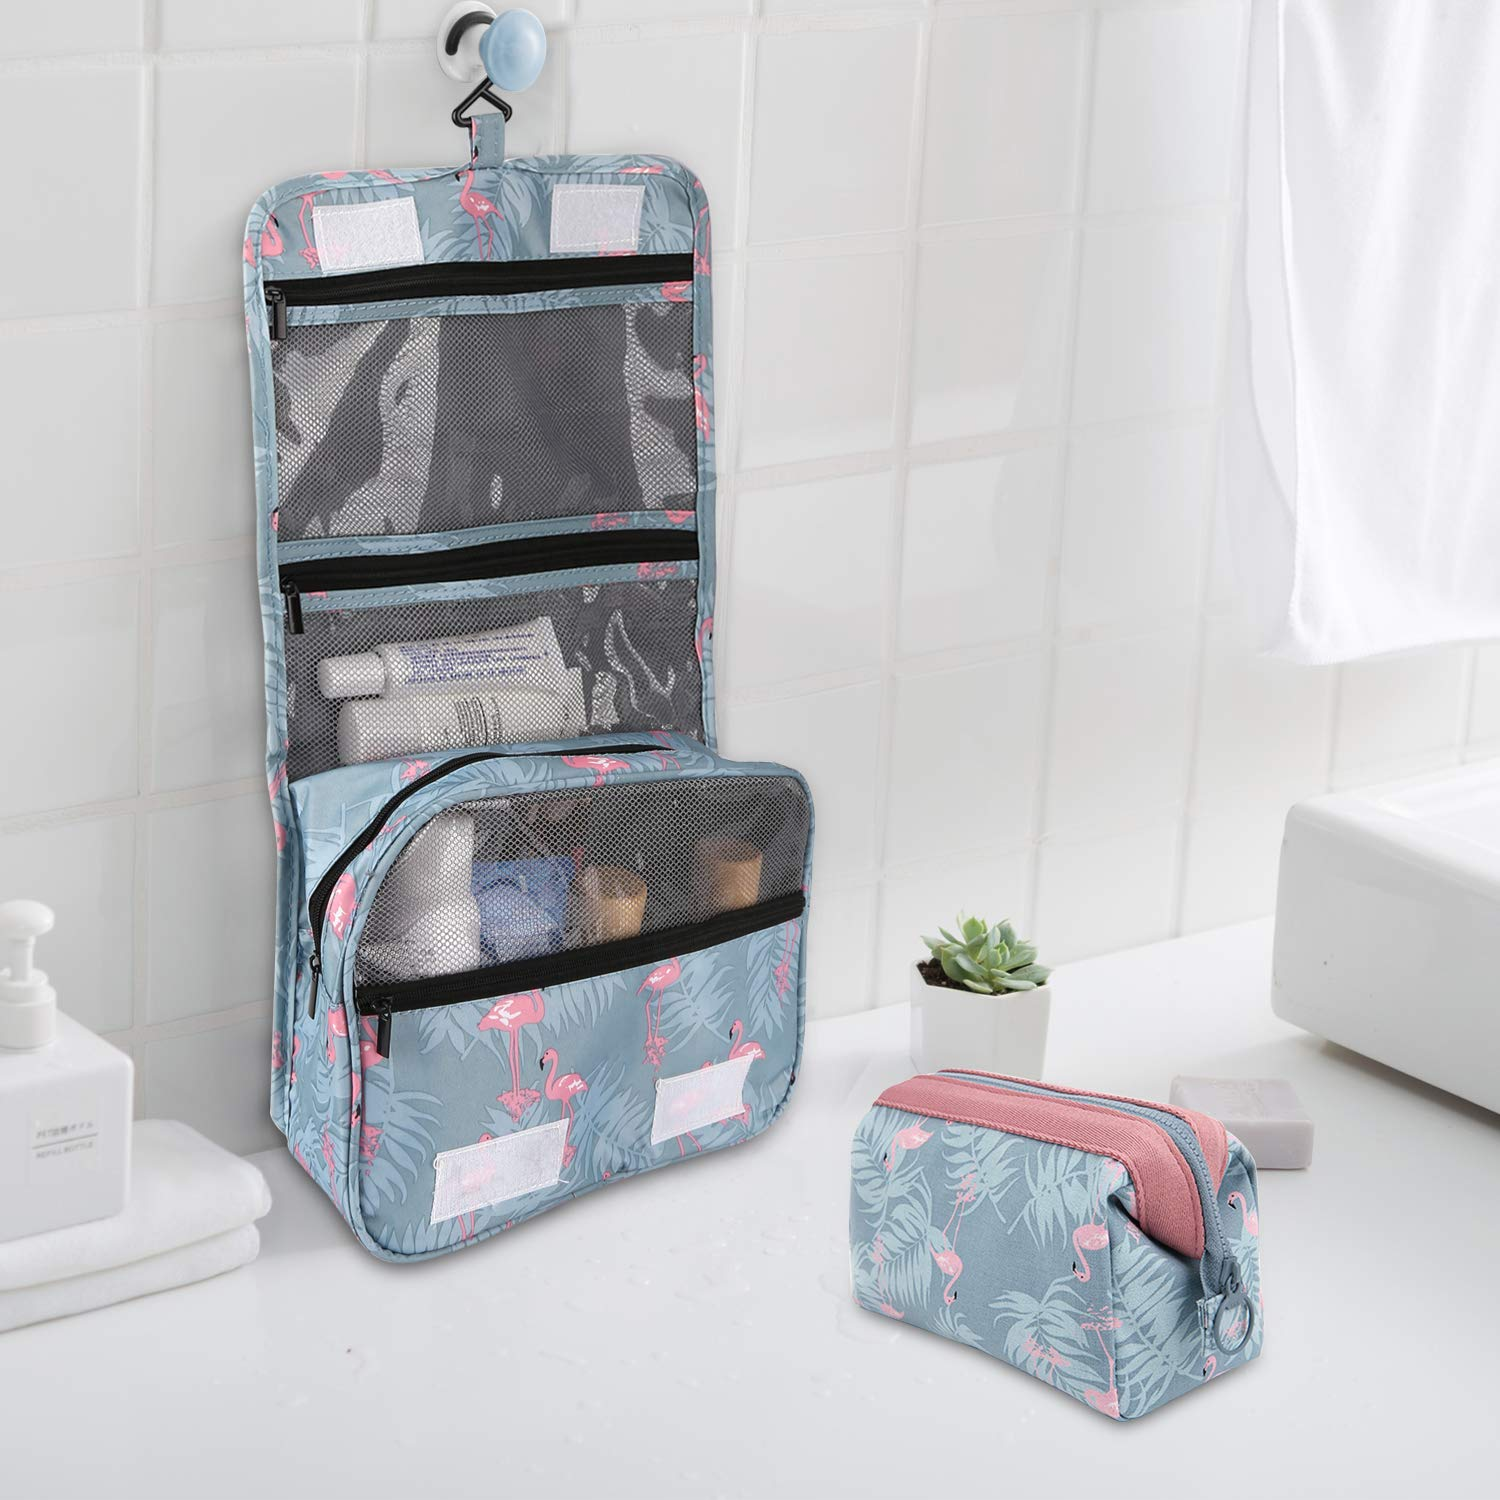 2 Pieces Toiletry Bag Multifunction Hanging Cosmetic Bag Portable Organizer Makeup Bags Pouch Large Capacity Waterproof Travel Bag for Women Girls Men by Fairyland (Image #1)